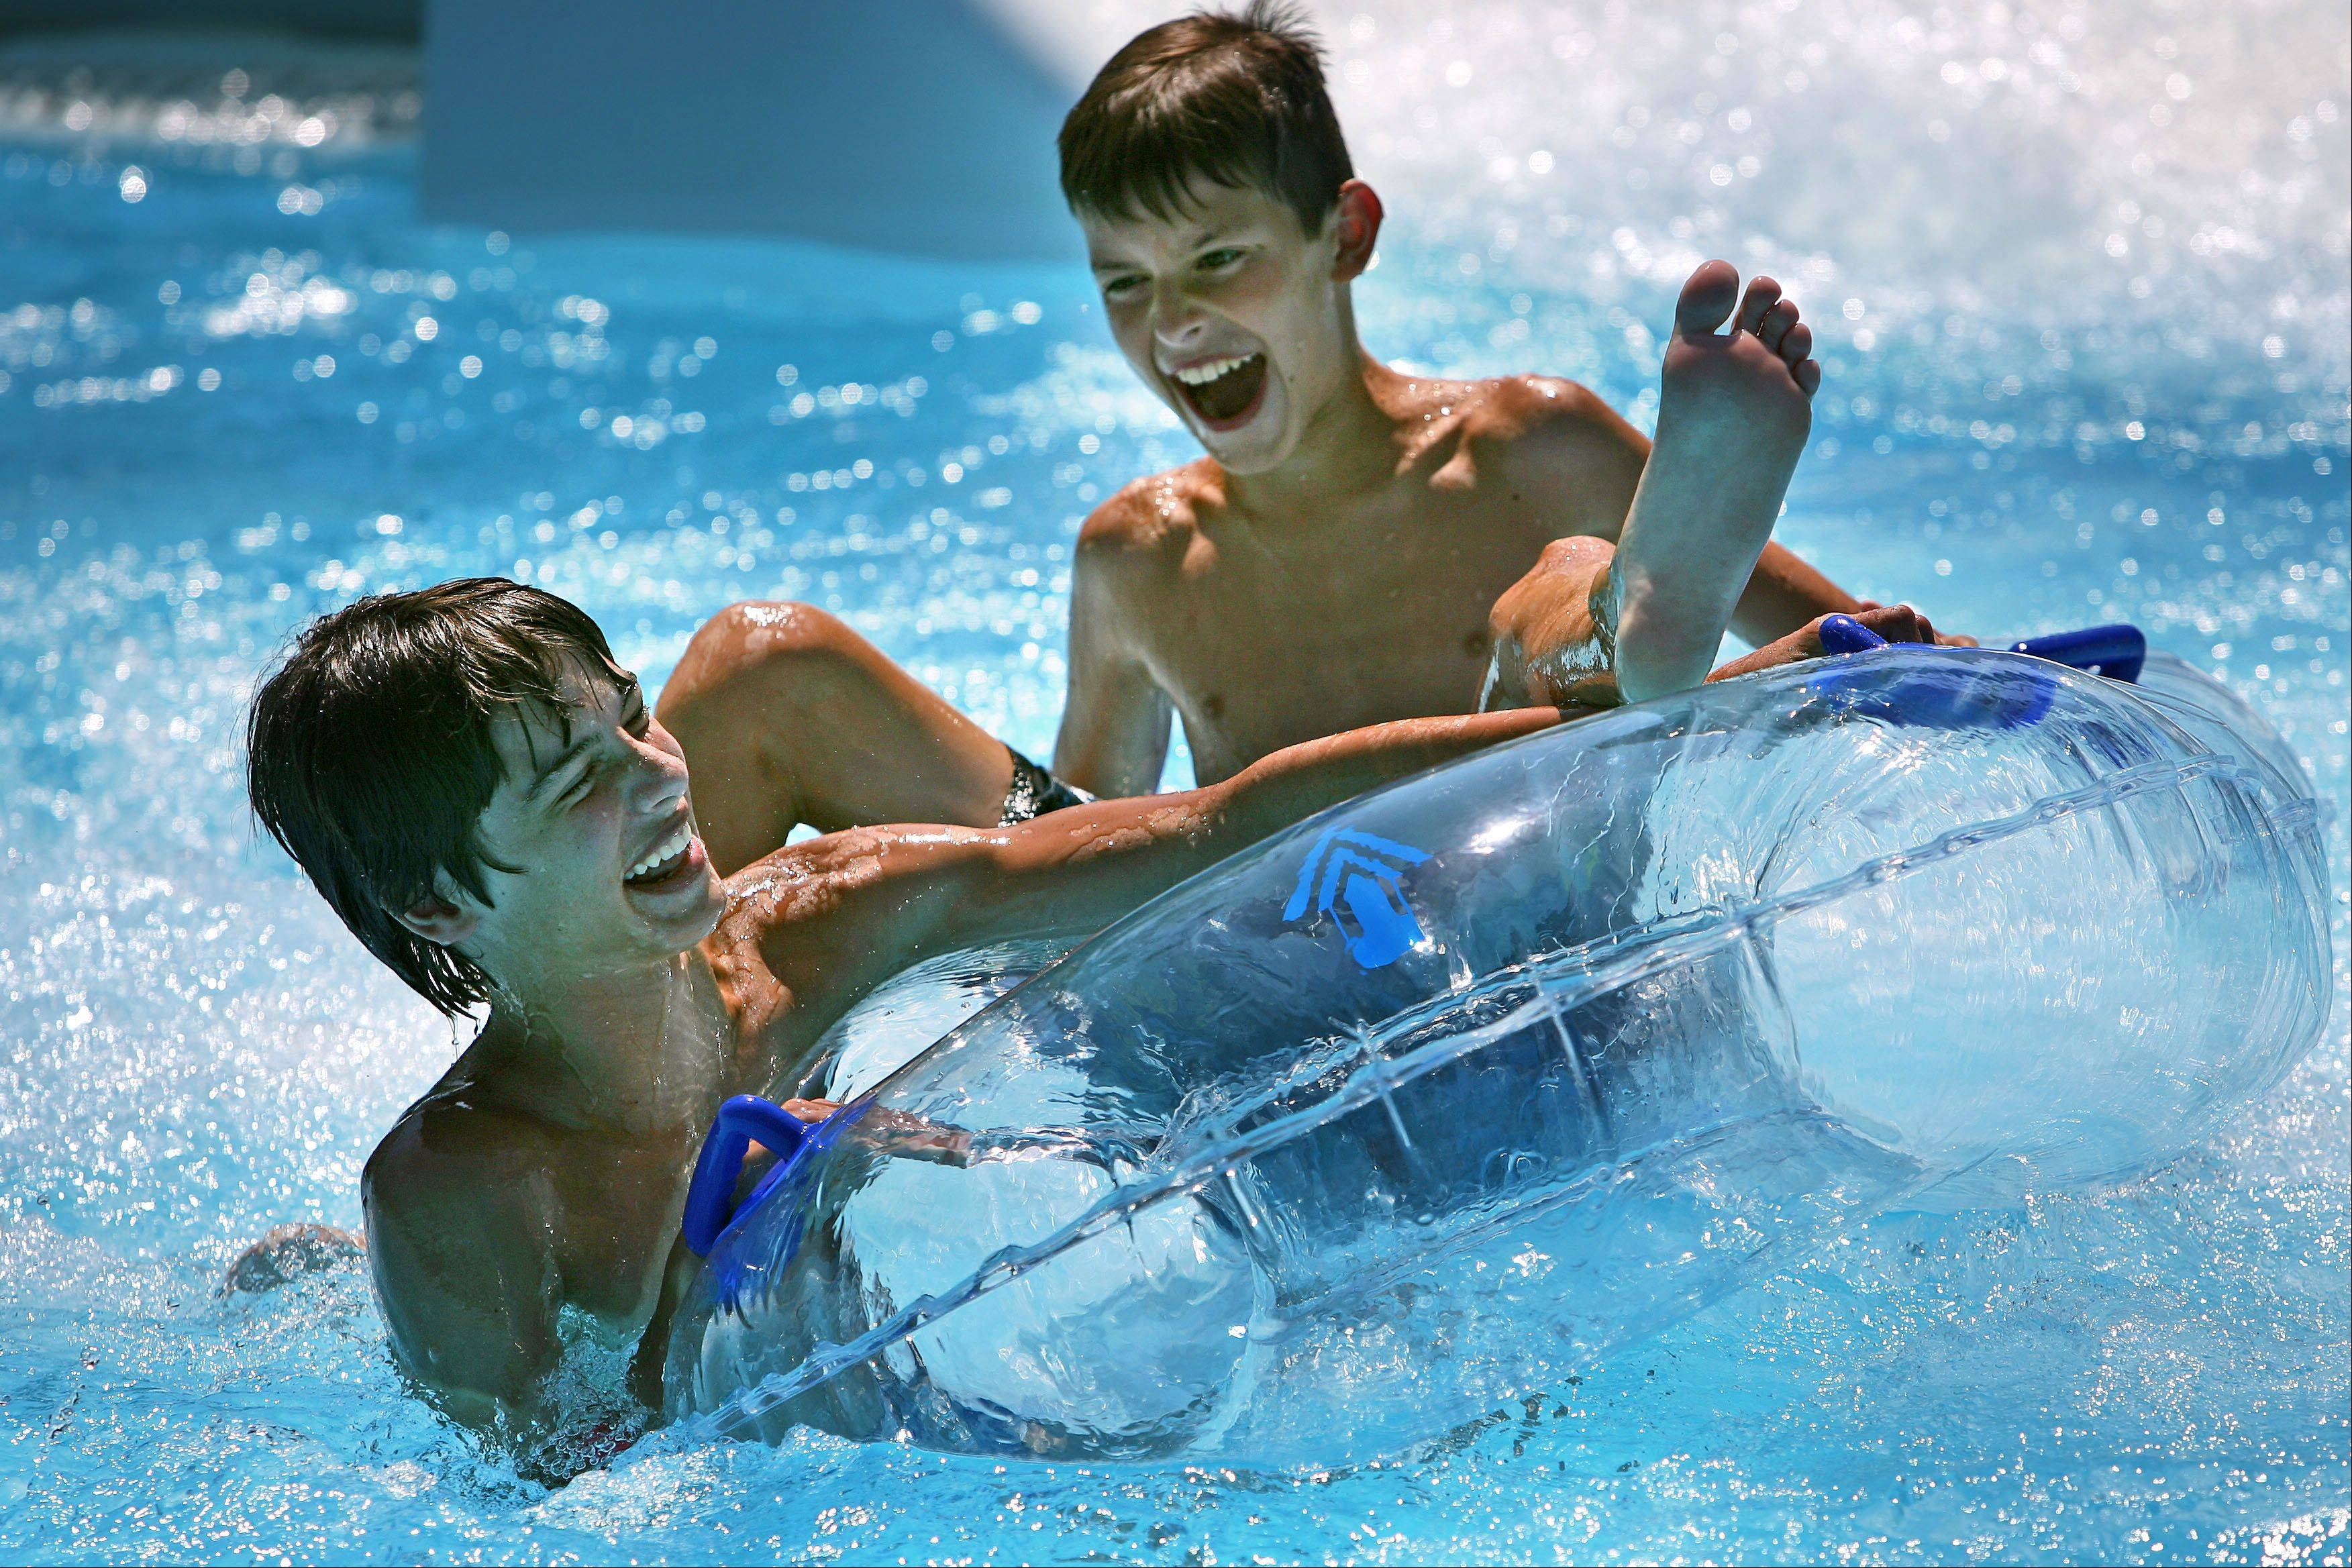 Andre Hromic of Wauconda, left, and Alex Gracanin of Chicago, both 12, splash into the water after going down a slide Tuesday at Barefoot Bay Family Aquatic Center in Mundelein.